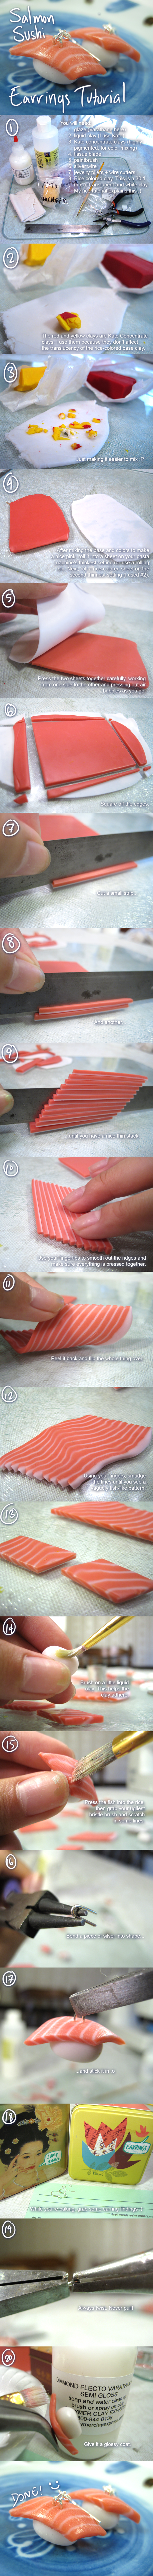 Salmon sushi earrings tutorial by lava-tomato